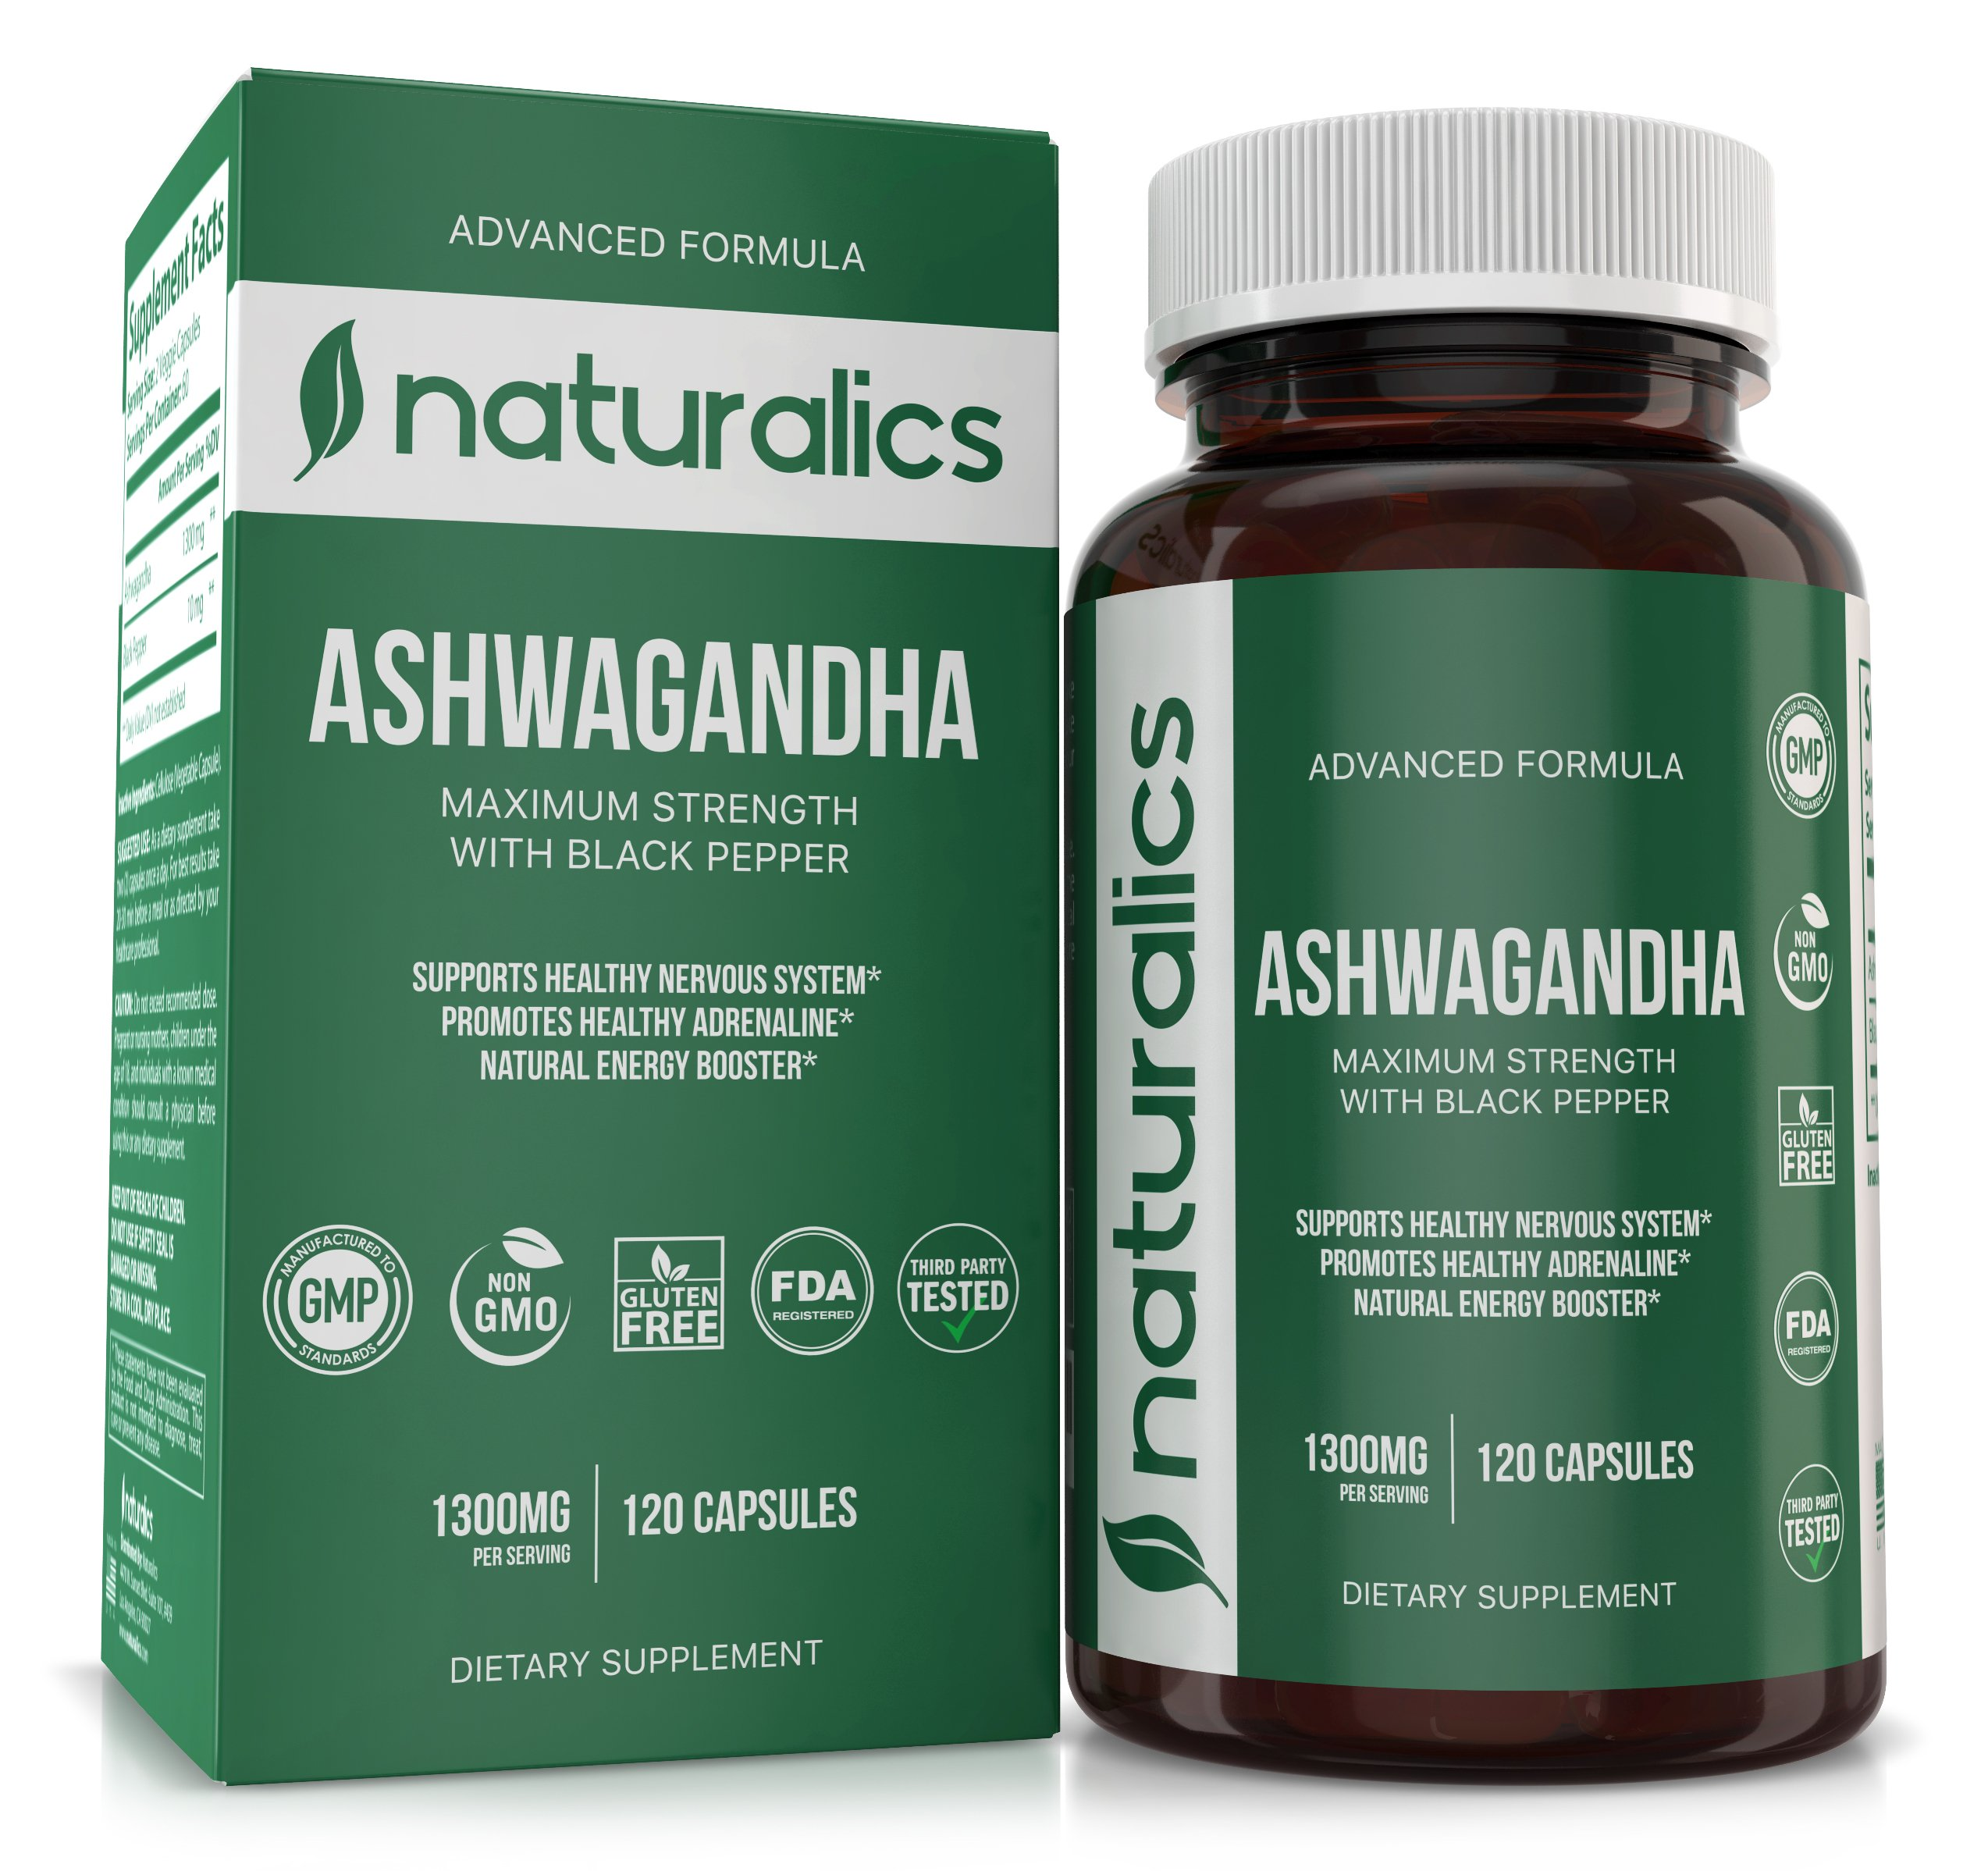 Naturalics™ - Advanced Formula Ashwagandha - Black Pepper Extract For Increased Absorption - Natural & Healthy Stress Support & Mood Enhancer - Immune, Energy & Thyroid Support 60 Servings